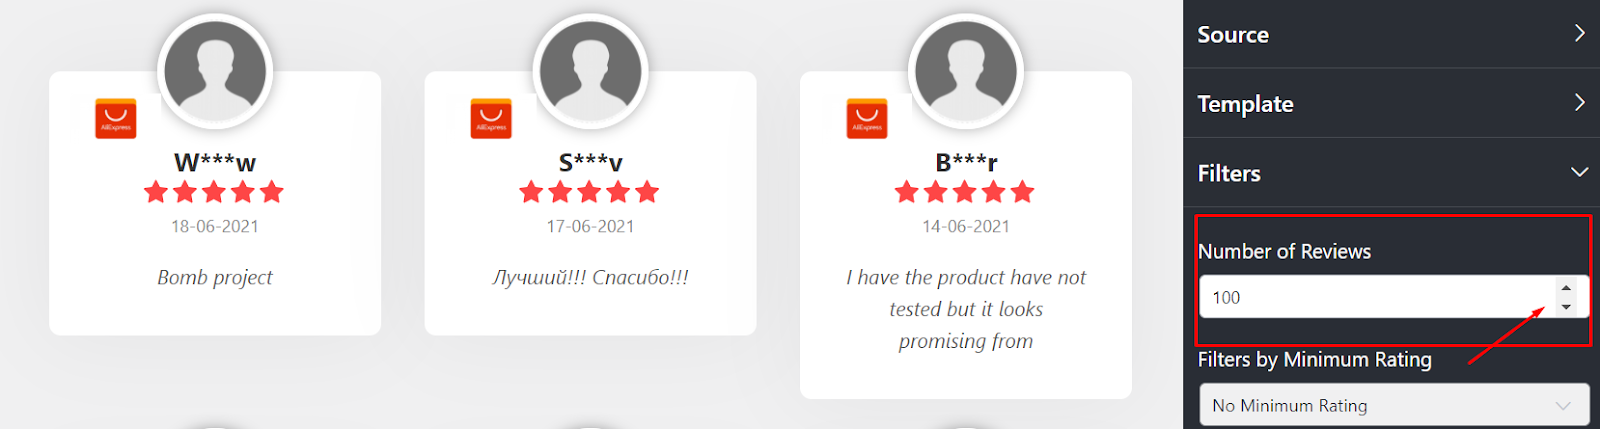 AliExpress reviews Number of reviews